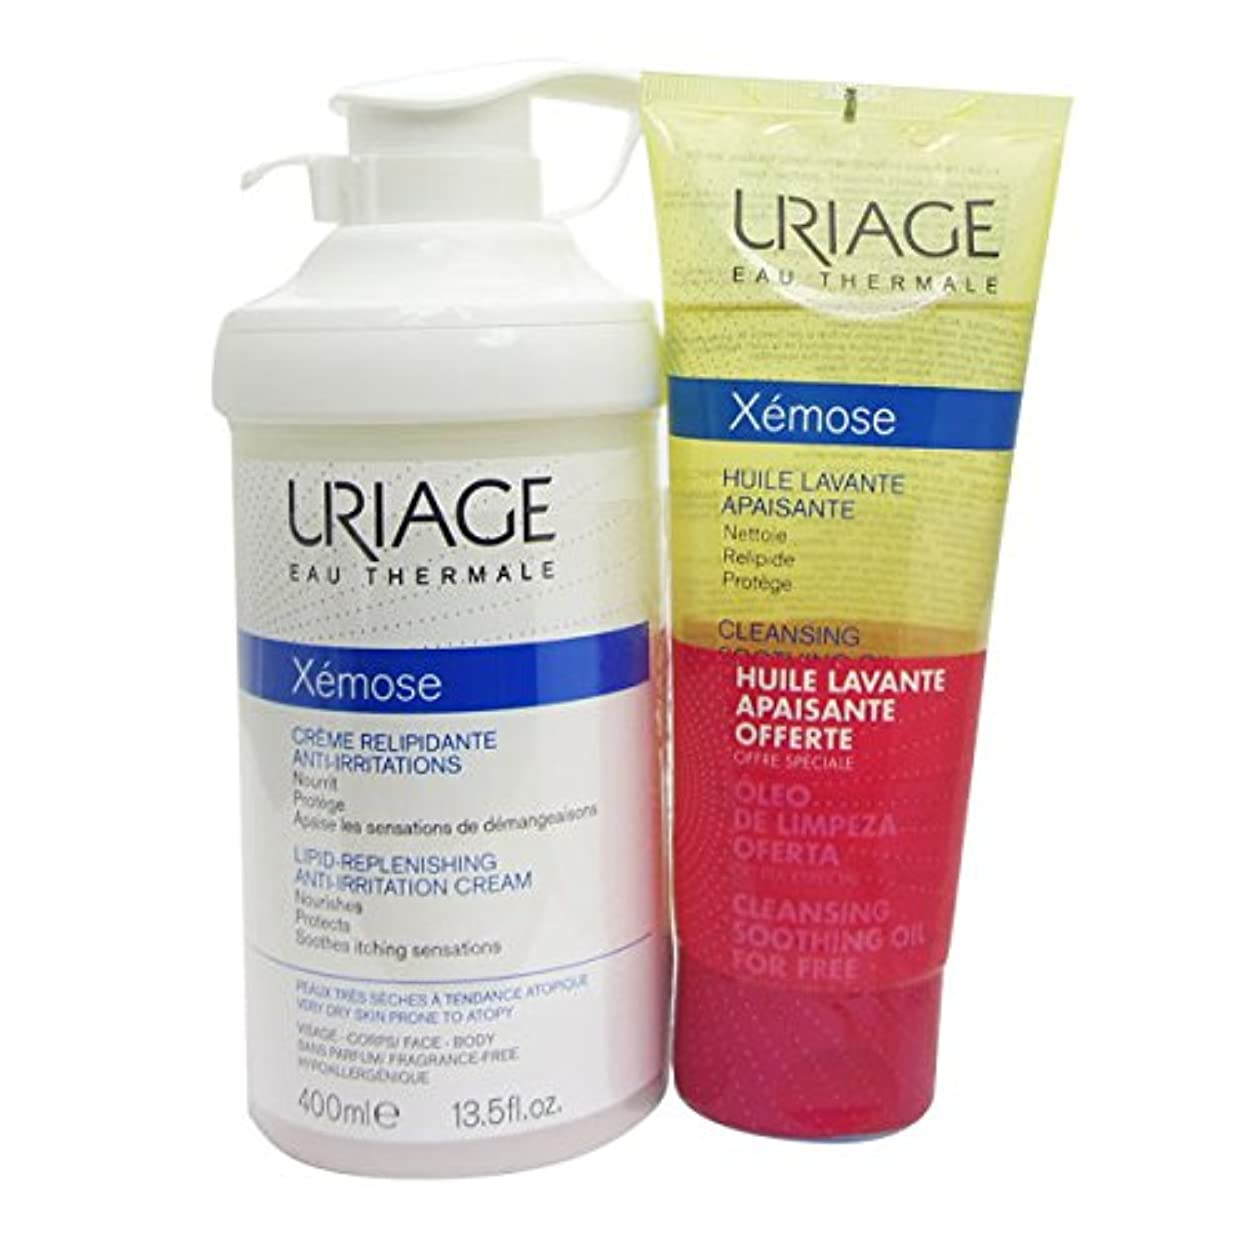 増幅する包括的責Uriage Xémose Pack Universal Emollient Cream 400ml + Gift Cleansing Oil